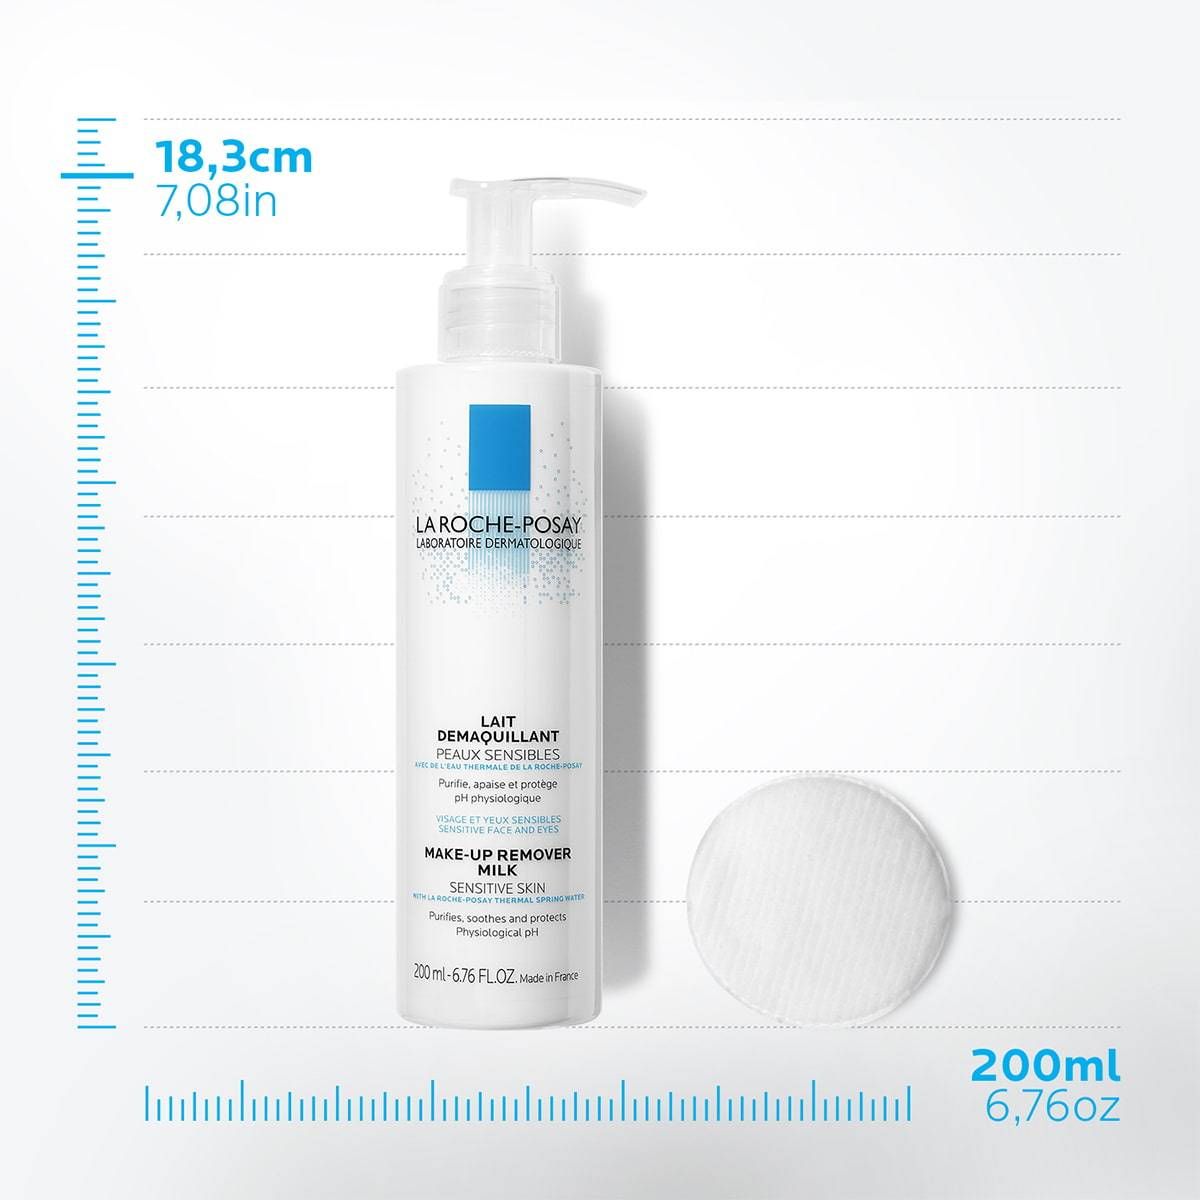 La Roche Posay Tuotesivu Face Cleanser Physiological Make Up Remover